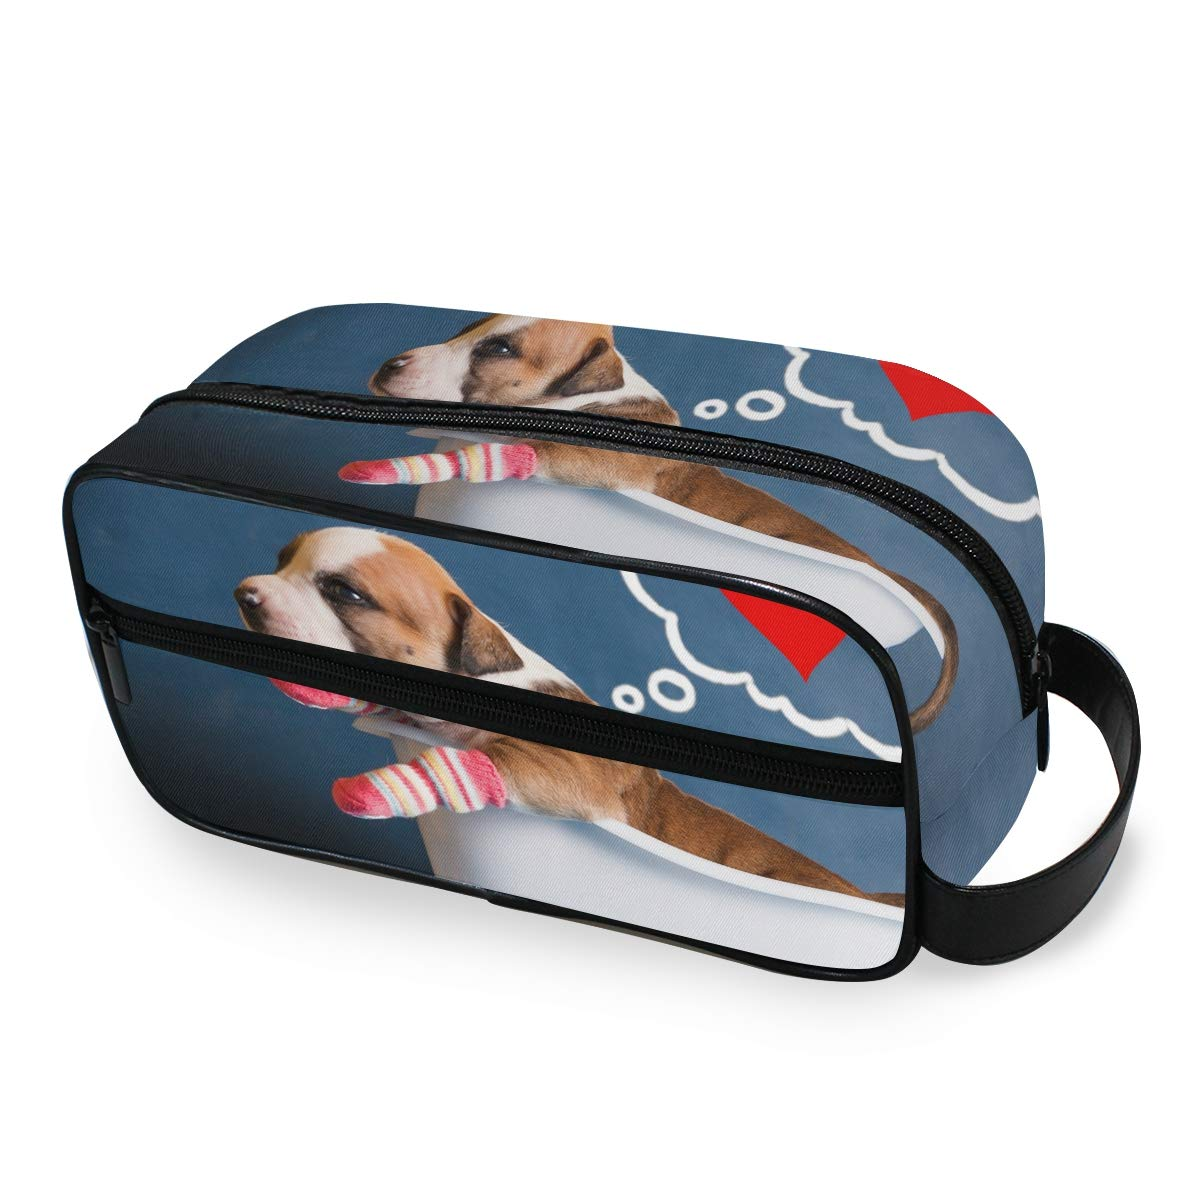 Cosmetic Bag Makeup Case Bath Crock Dog Portable Toiletry Bag Organizer Accessories Case Tools Case for Trave